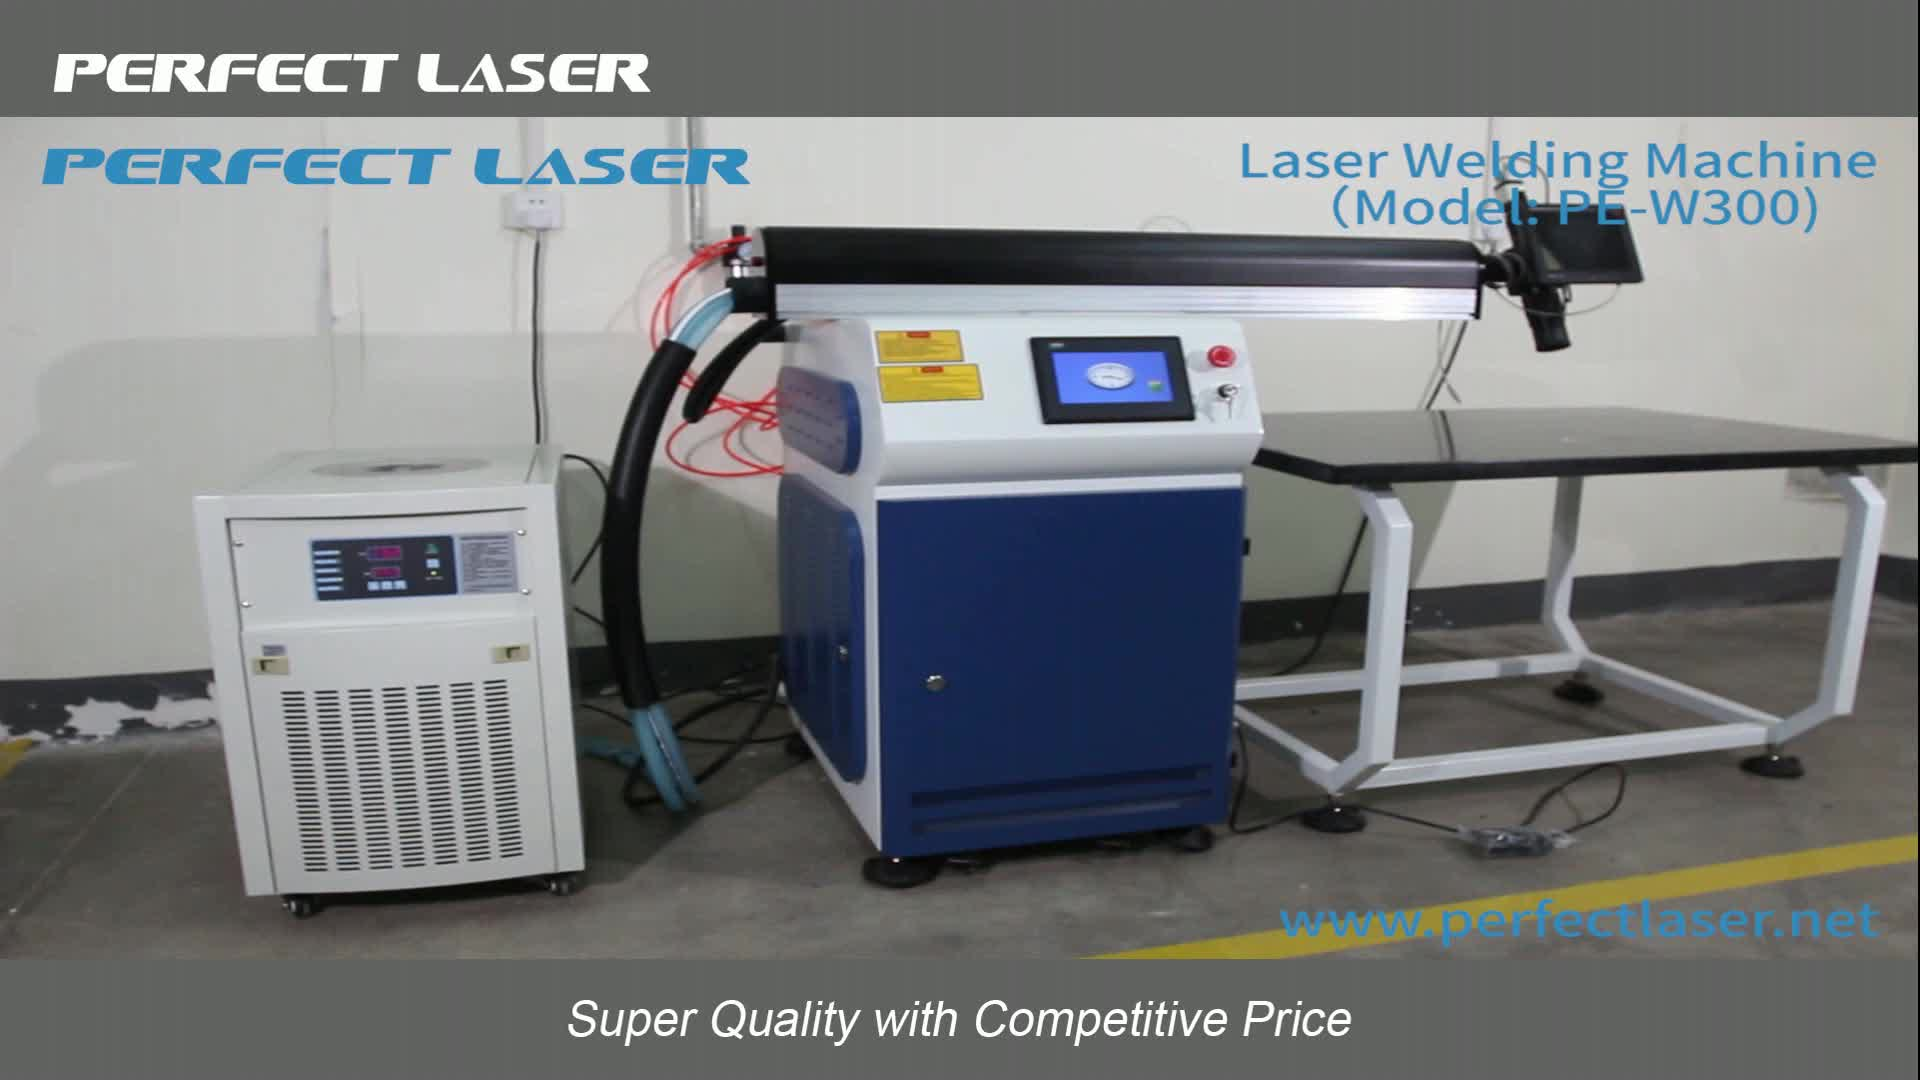 High Power Laser Welder Machine Stainless Steel PE-W500 Welding Tool For Metal